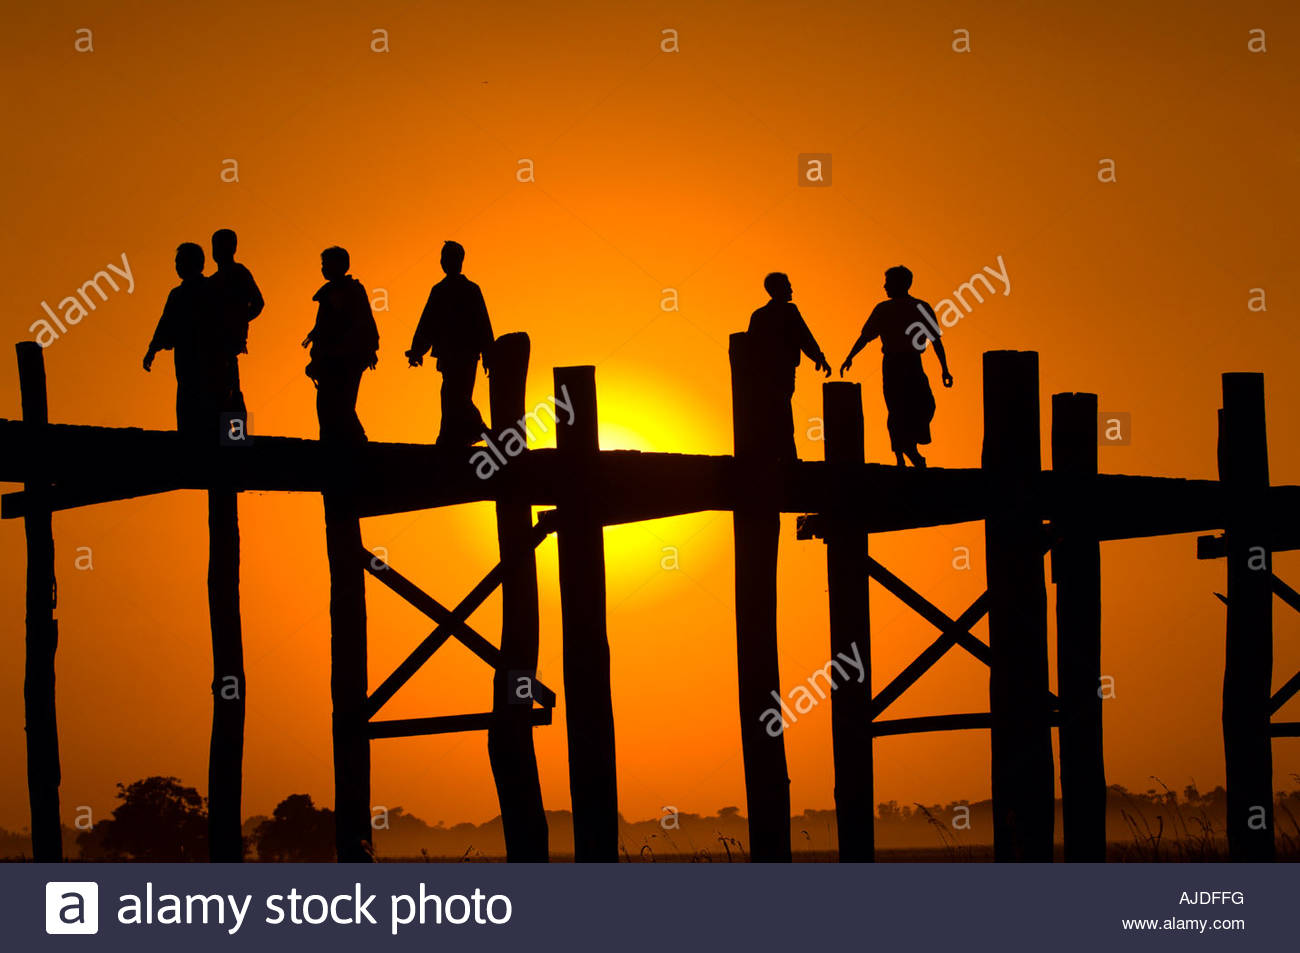 6c249c817ef127 Silhouettes of people walking across the iconic U Bein bridge over the  Ayerwaddy River at sunset Amarapura Myanmar